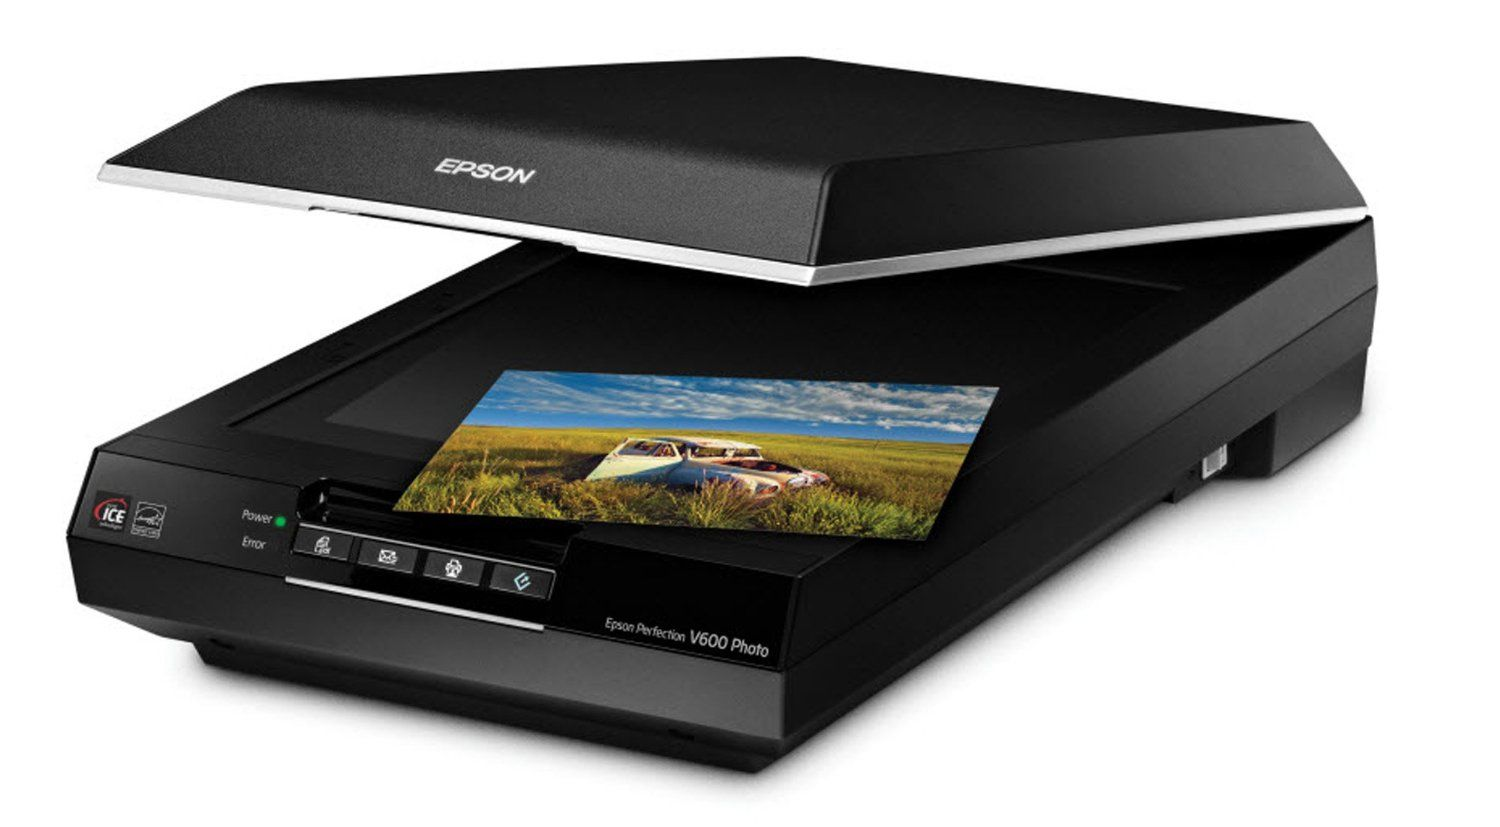 68599e0289540ba1f8a64ff91378cf7a - How Do I Get My Epson Printer To Scan To My Computer